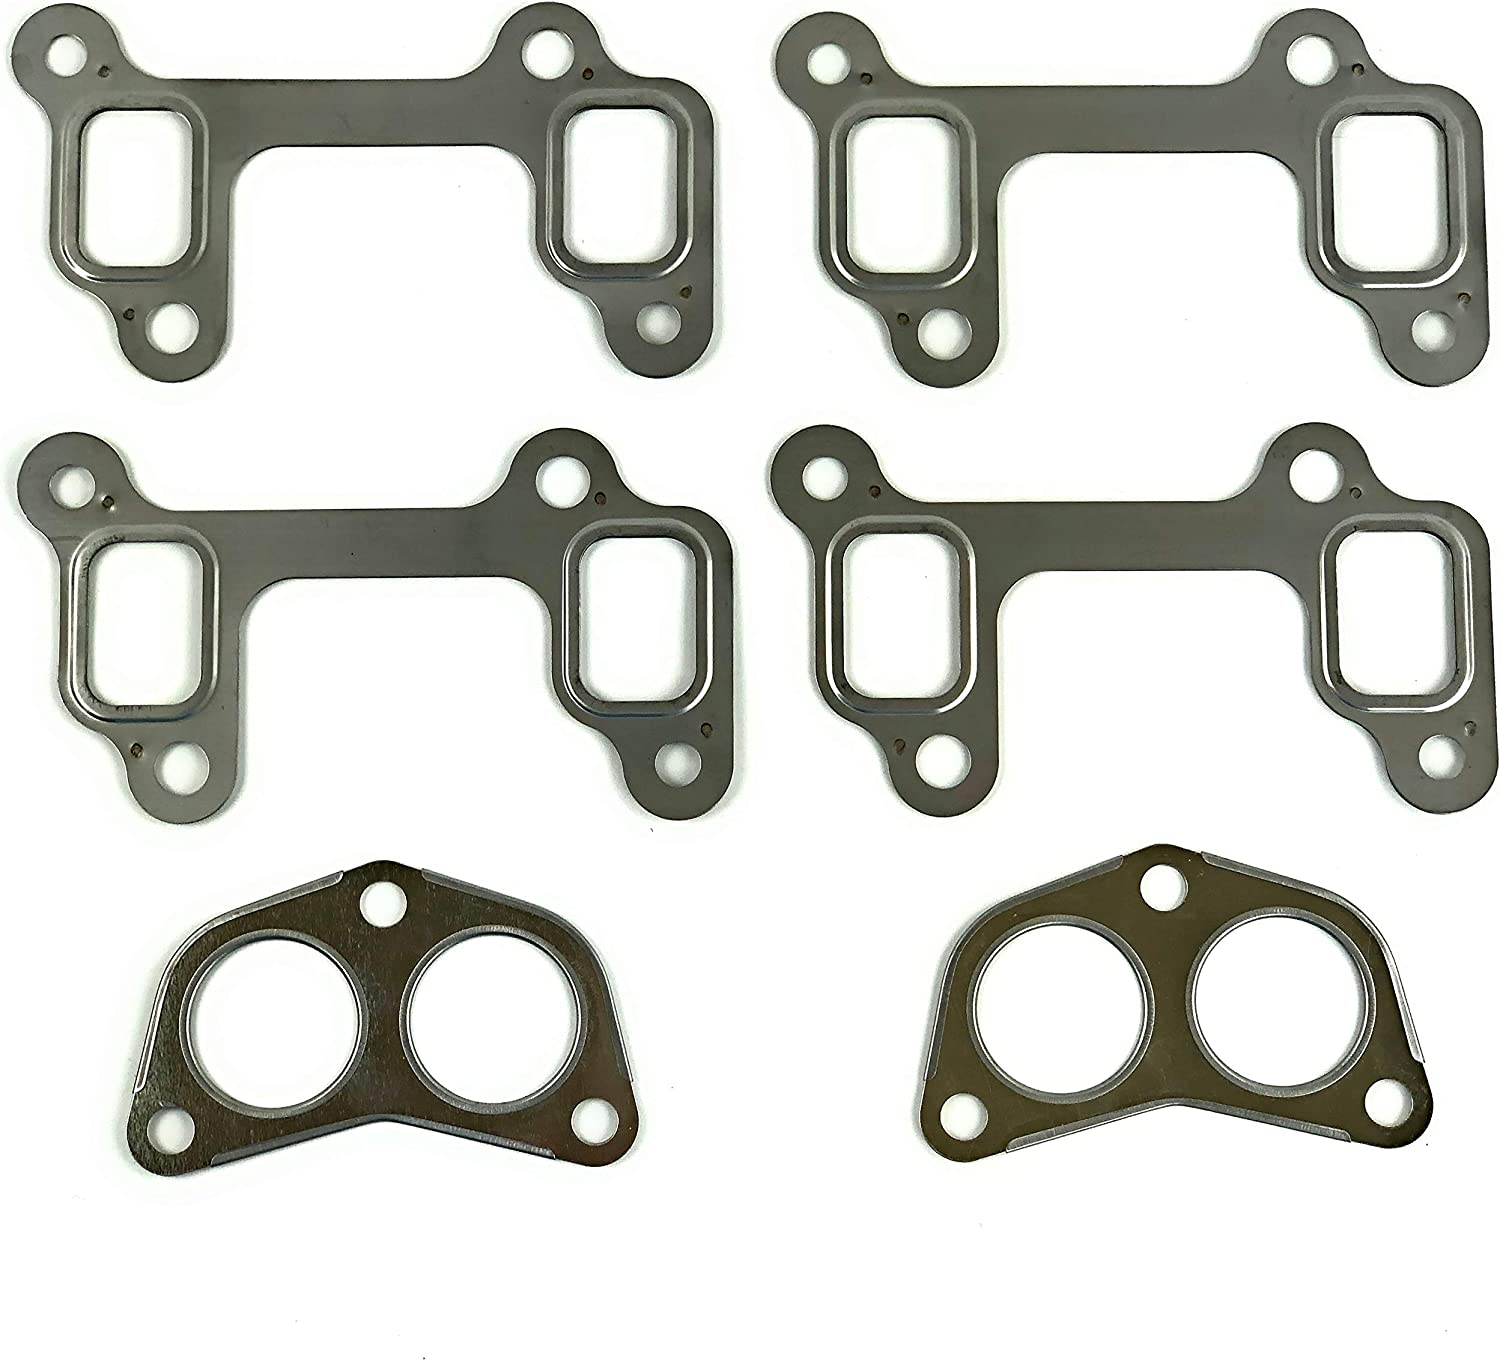 Land Rover Exhaust Manifold Gasket Set For Discovery and Range Rover by Allmakes 4x4